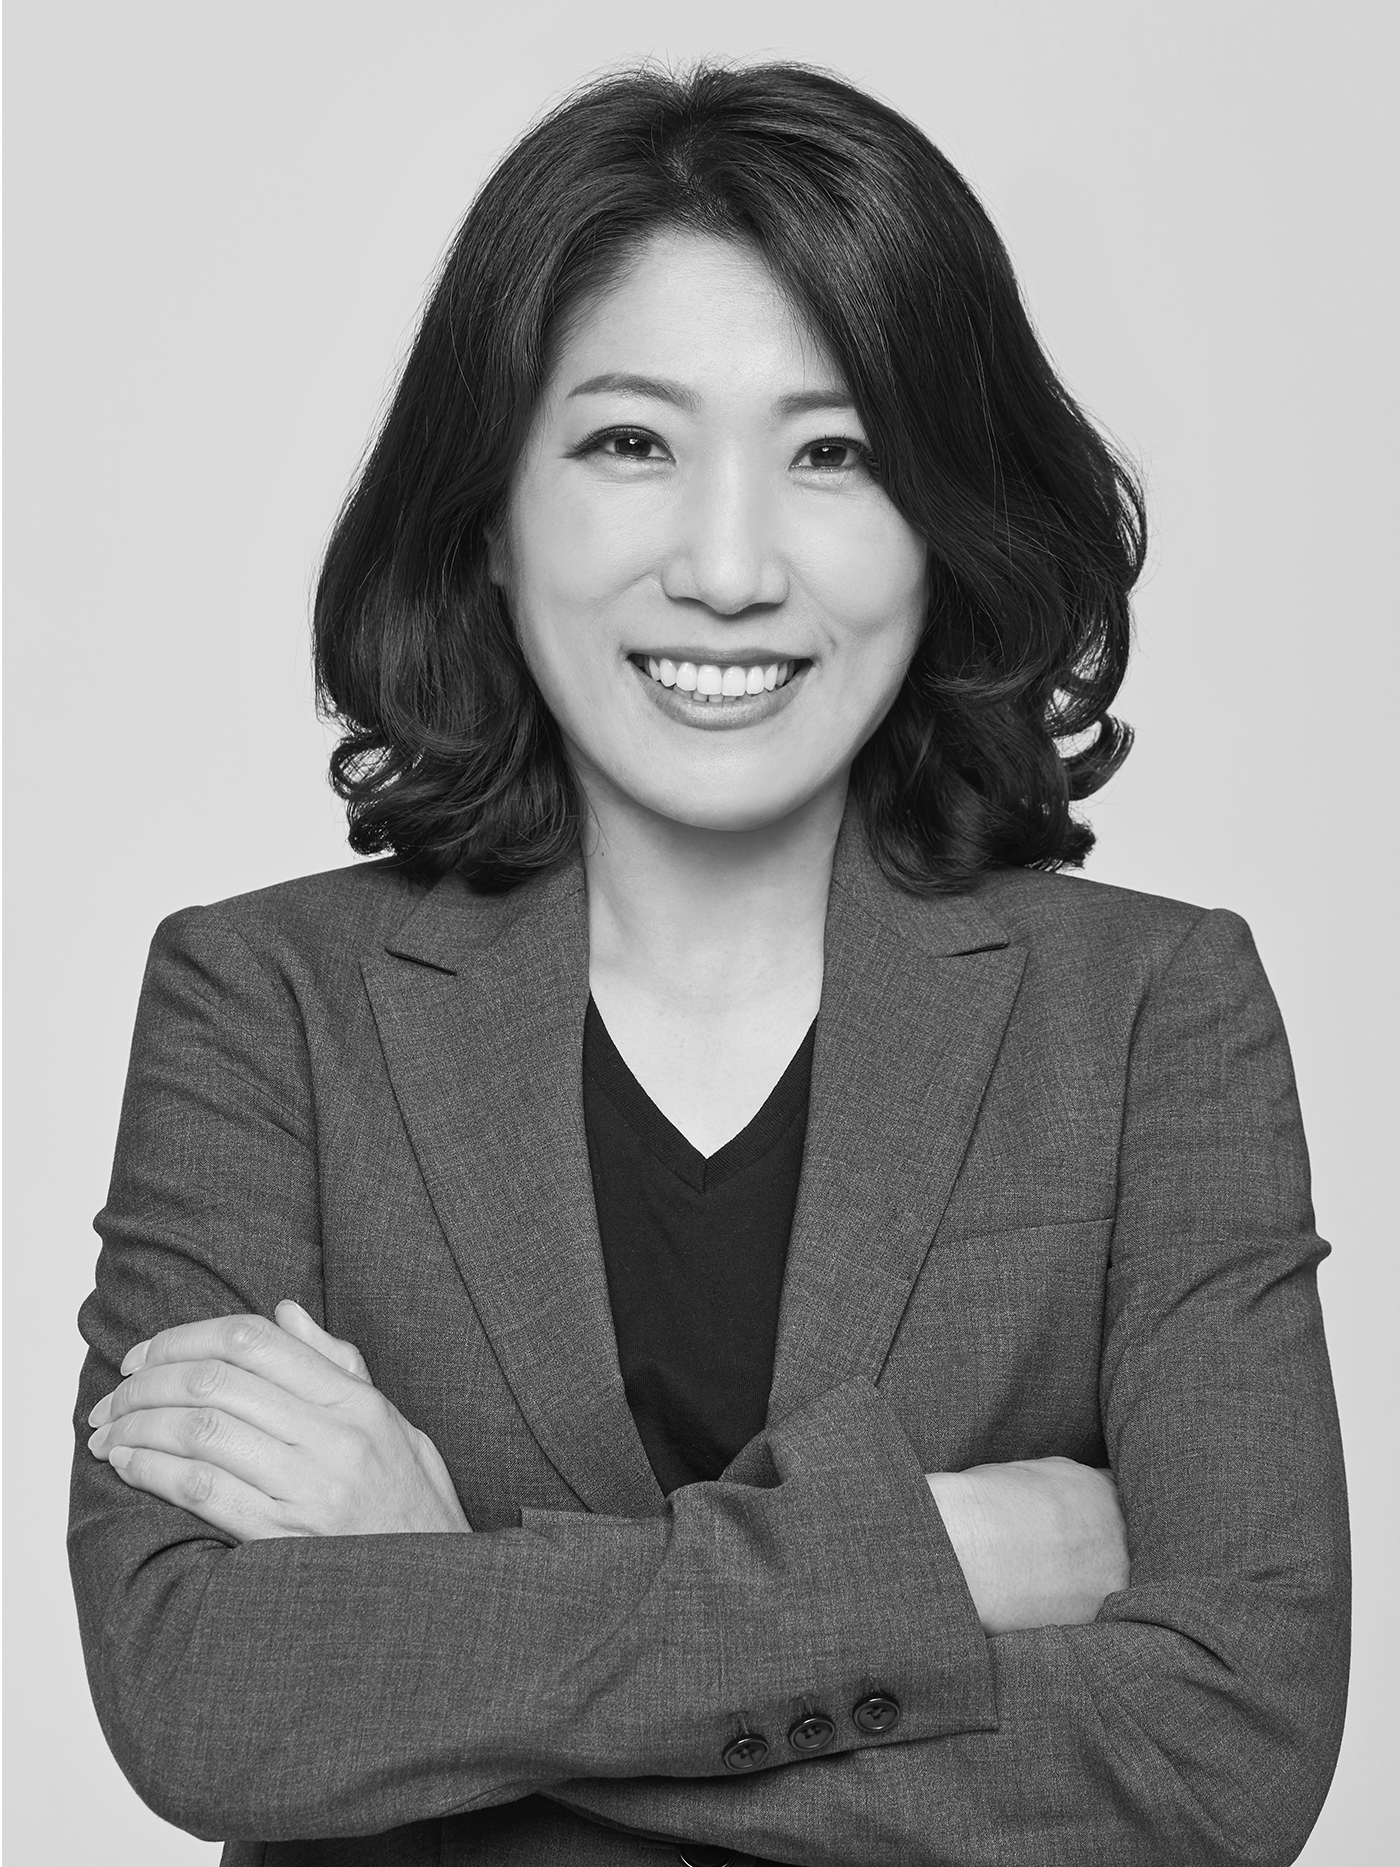 Sun Lee - Head of Music Parternerships & Subscription,Google-Korea & Greater China,she was recognized as one of Billboard's 2019 International Power Players